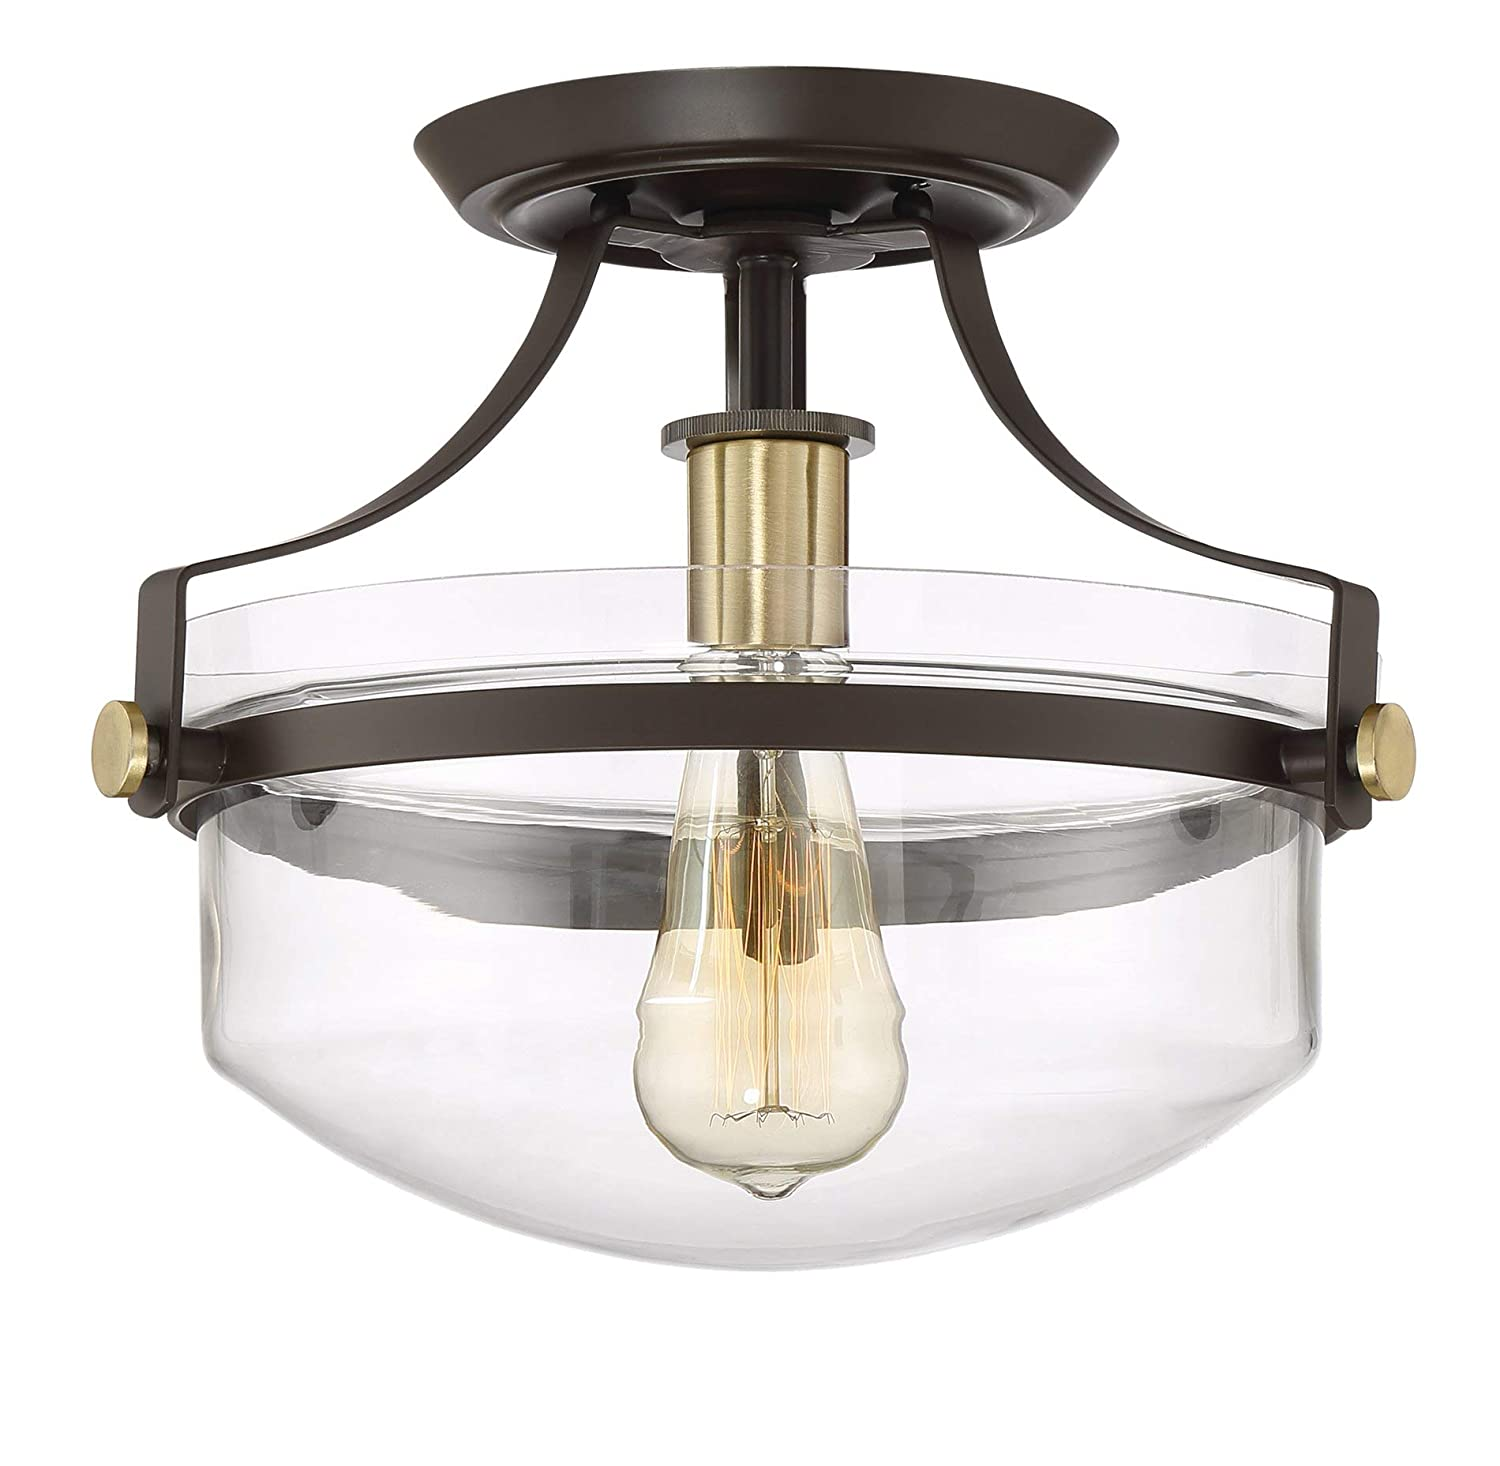 "Kira Home Zurich 12"" Rustic Semi-Flush Mount Ceiling Light w/Glass Shade, Antique Brass Accents, Oil-Rubbed Bronze Finish"